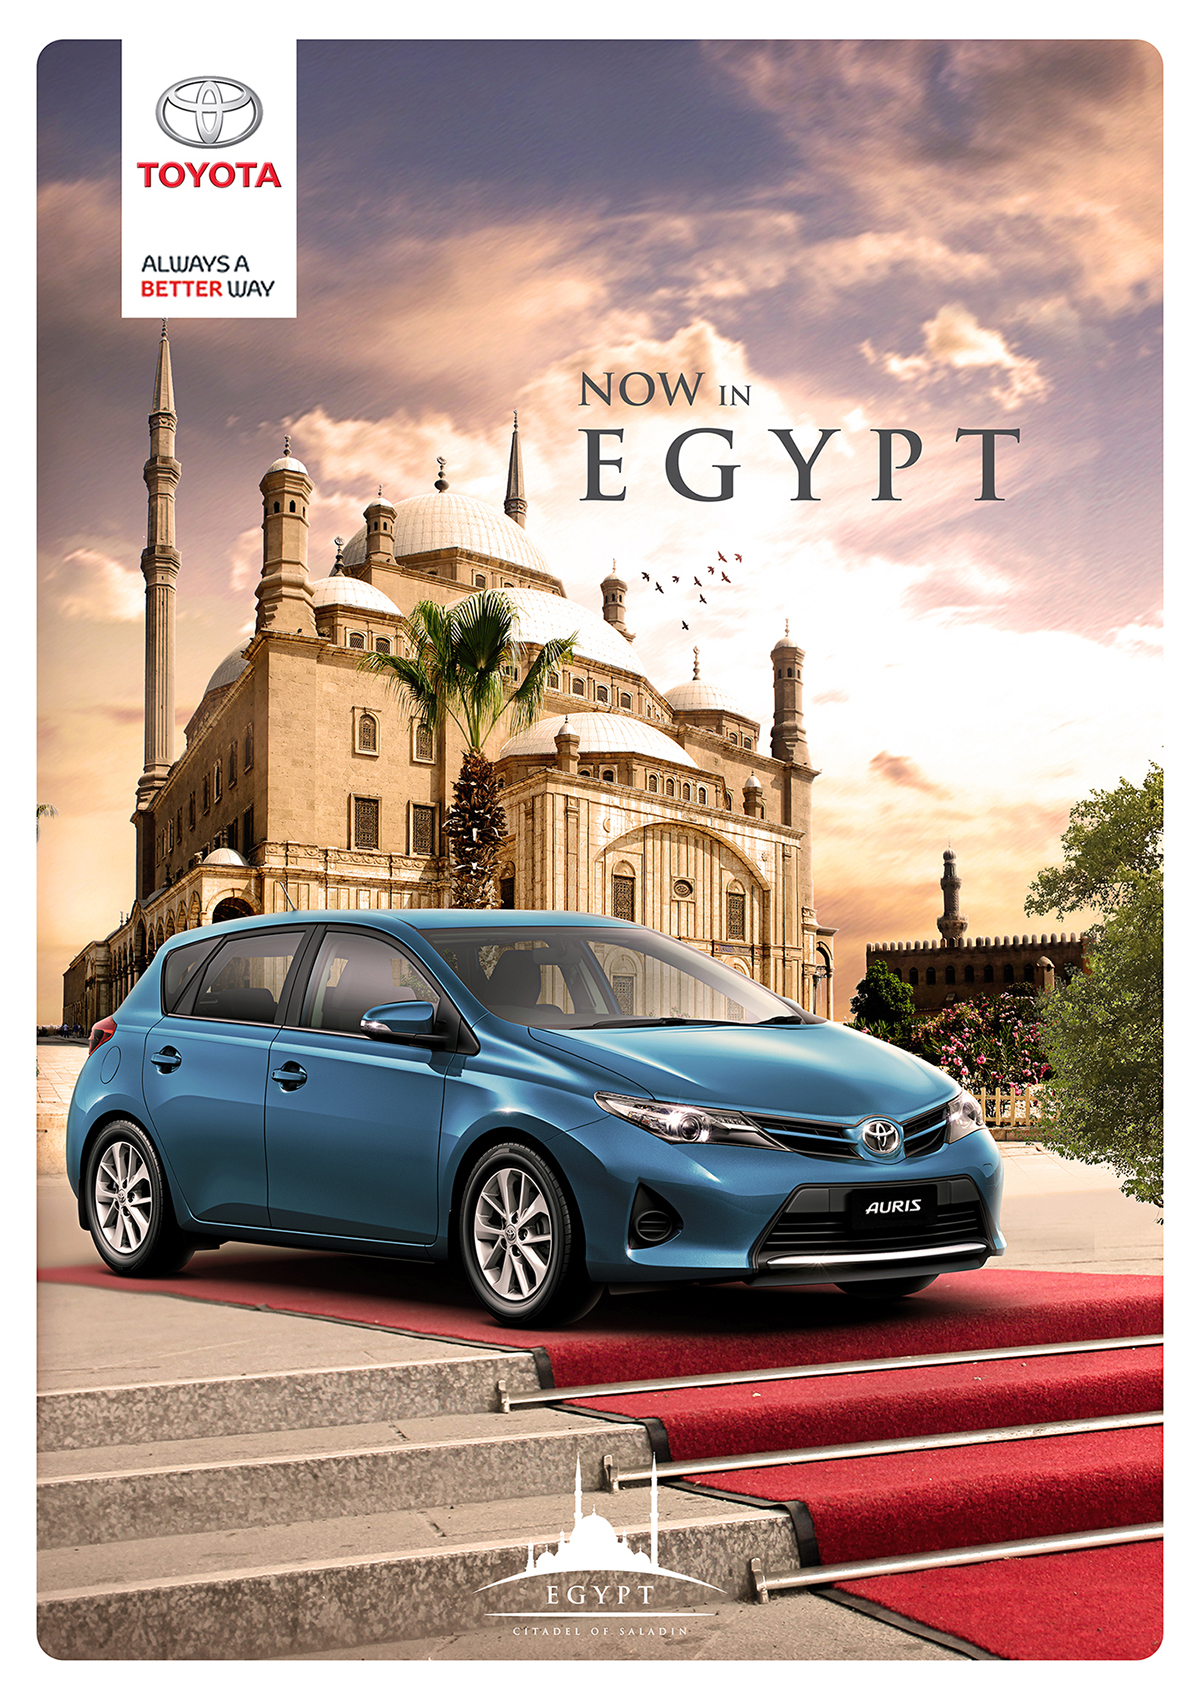 Http great ads blogspot com 2014 11 toyota now in egypt print html